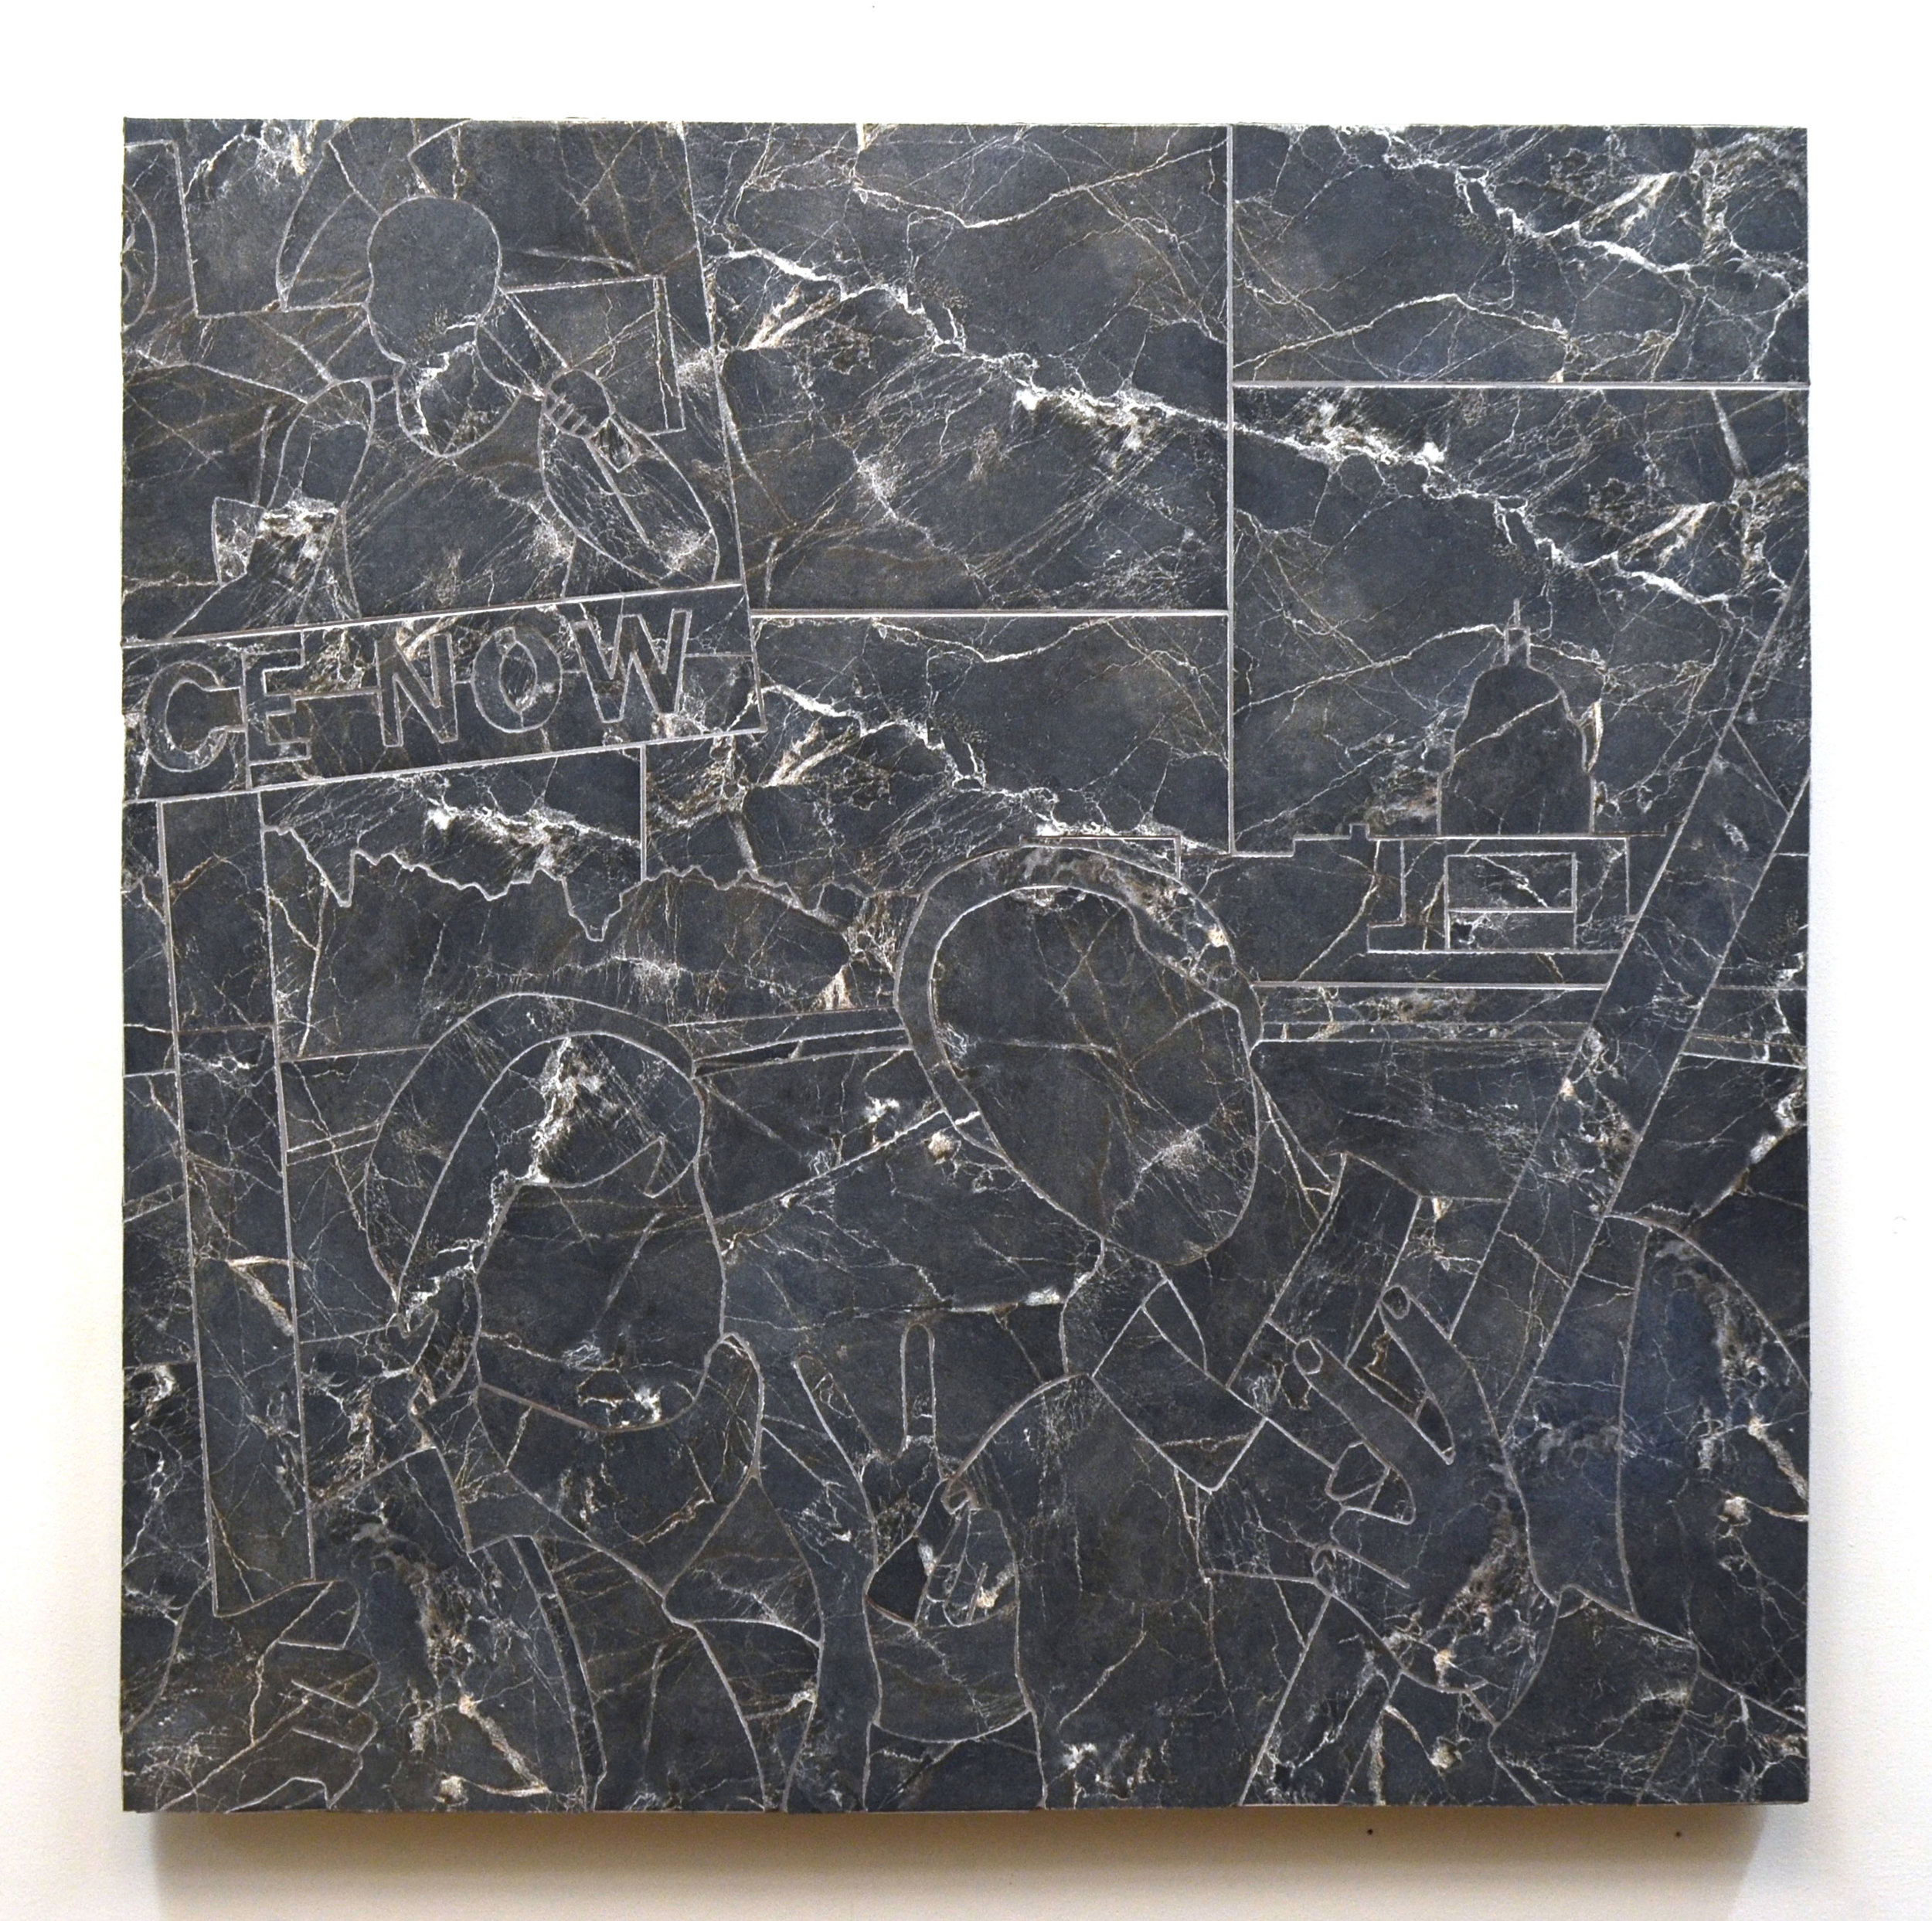 Joseph Bochynski, 2005 March on Washington (Civic Lessons), 2015, Ceramic tile on panel, 36 x 36 inch.